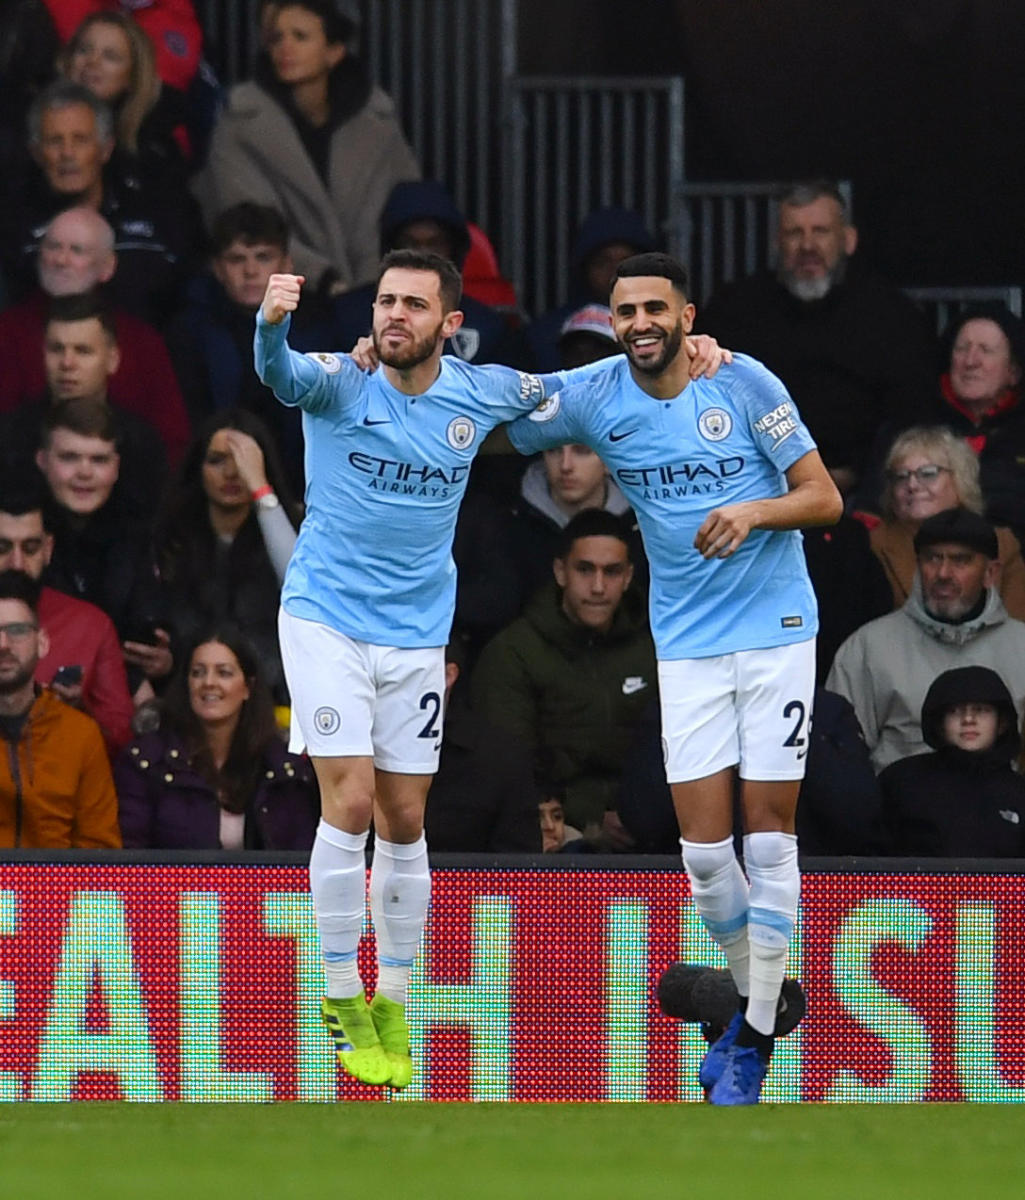 ON TARGET: Manchester City's Riyad Mahrez (right) celebrates after scoring against Bournemouth. REUTERS